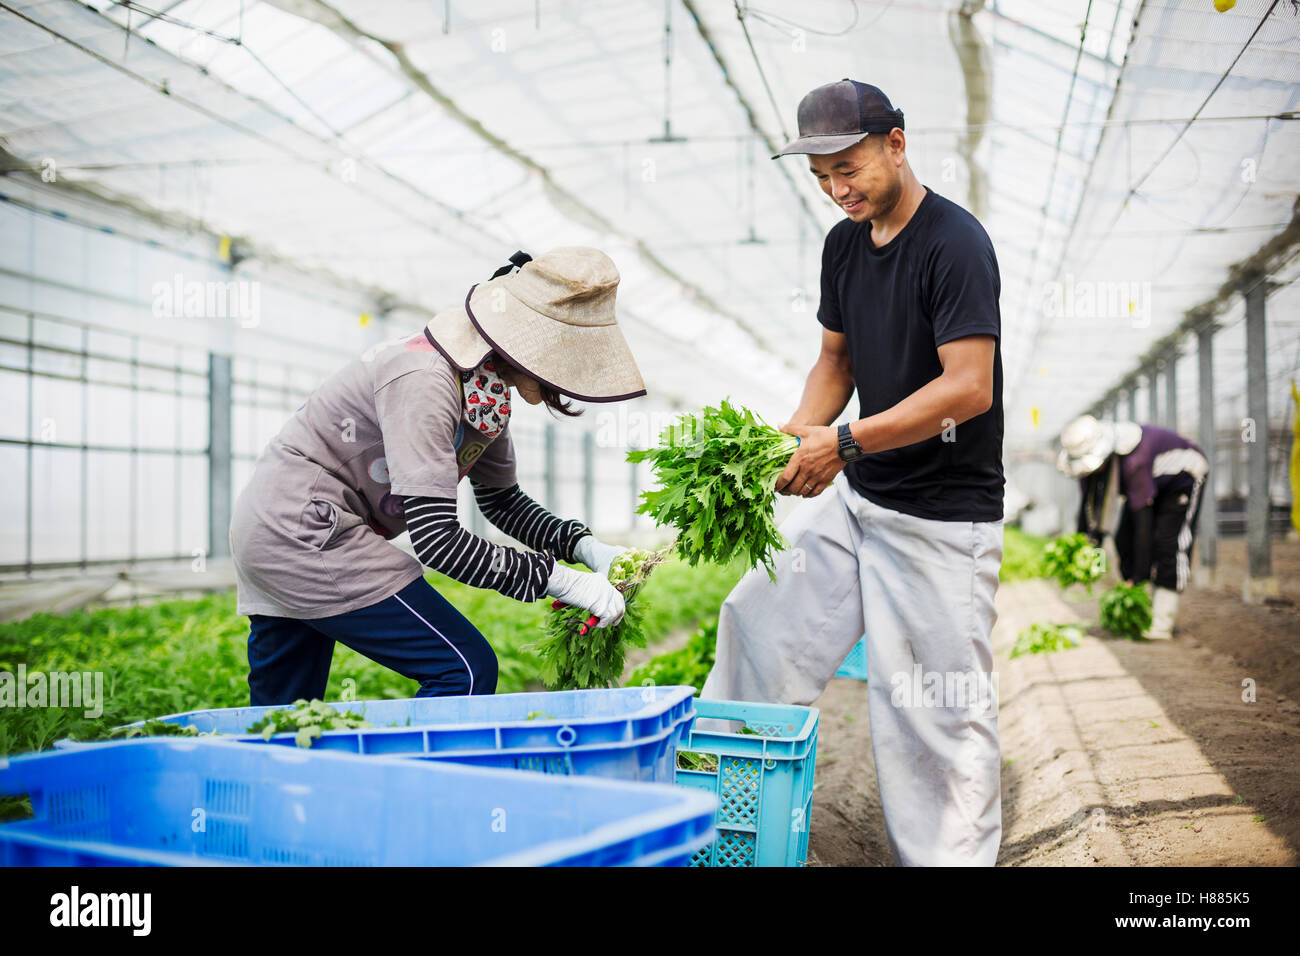 Two people working in a greenhouse harvesting a commercial food crop, the mizuna vegetable plant. - Stock Image